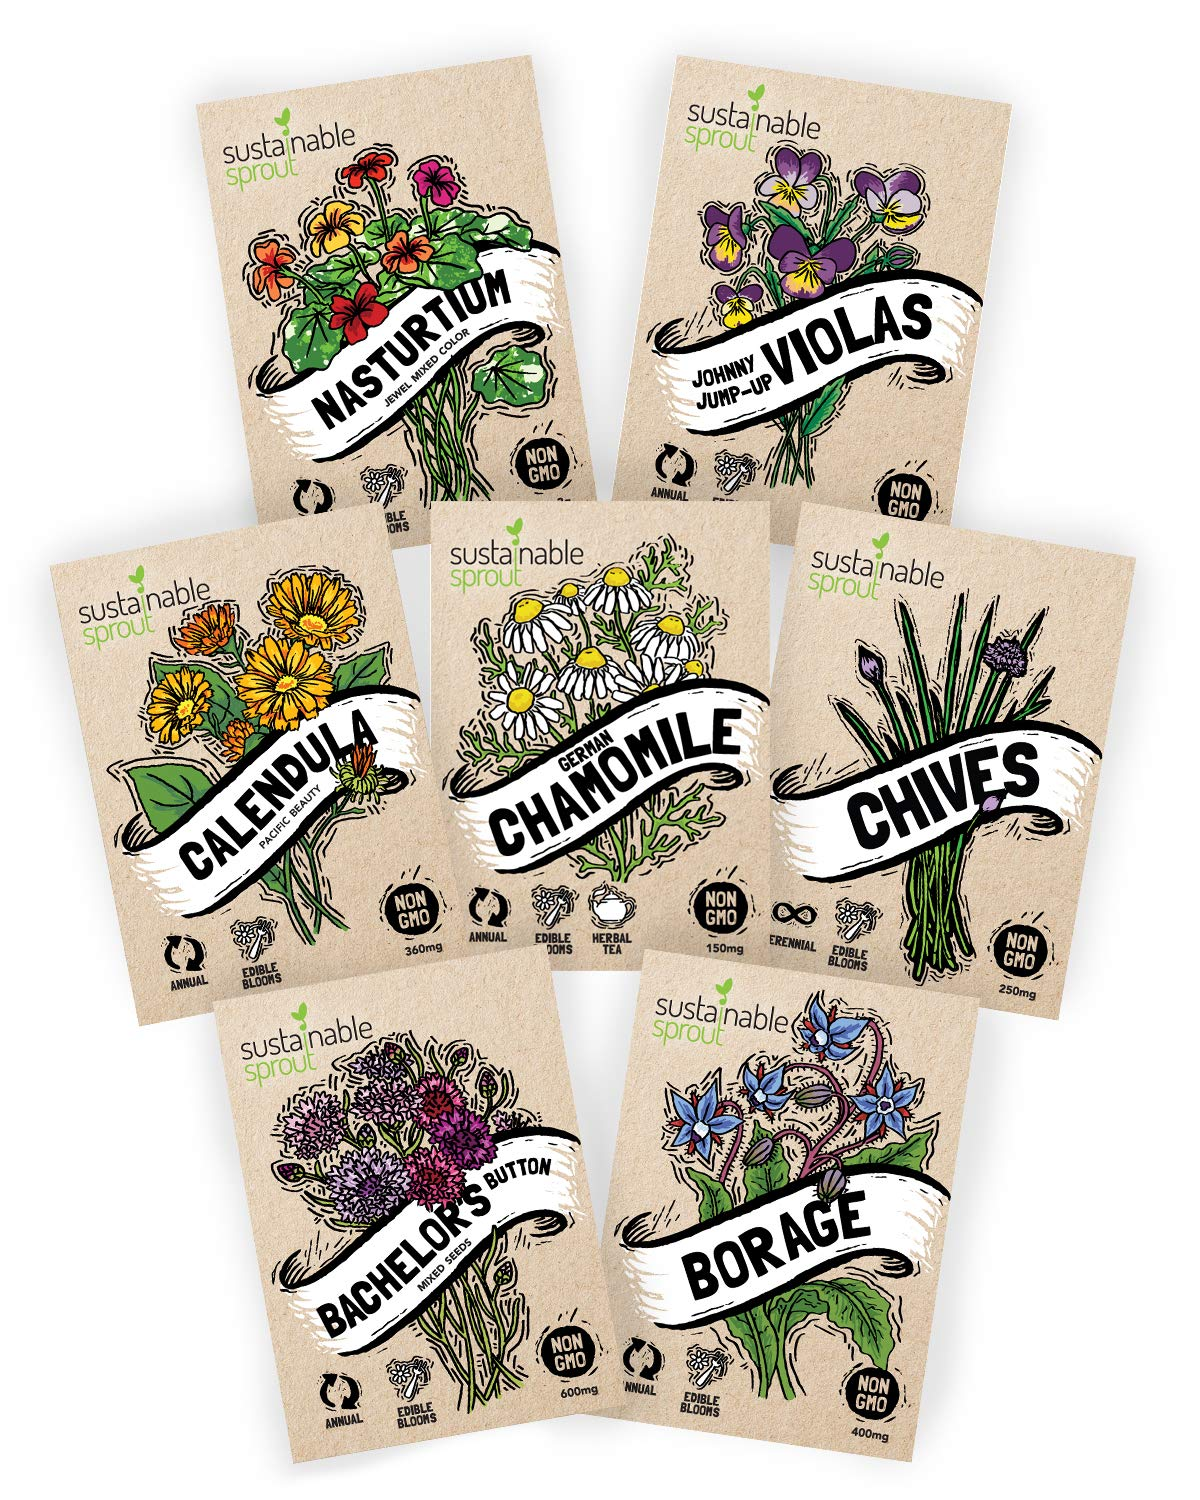 Edible Flower Seeds Variety Pack - 100% Non GMO - Nasturtium, Viola, Calendula, Chamomile, Chives, Bachelor Button, Calendula, Borage for Planting in Your Edible Blooms Culinary Garden by Sustainable Sprout (Image #1)